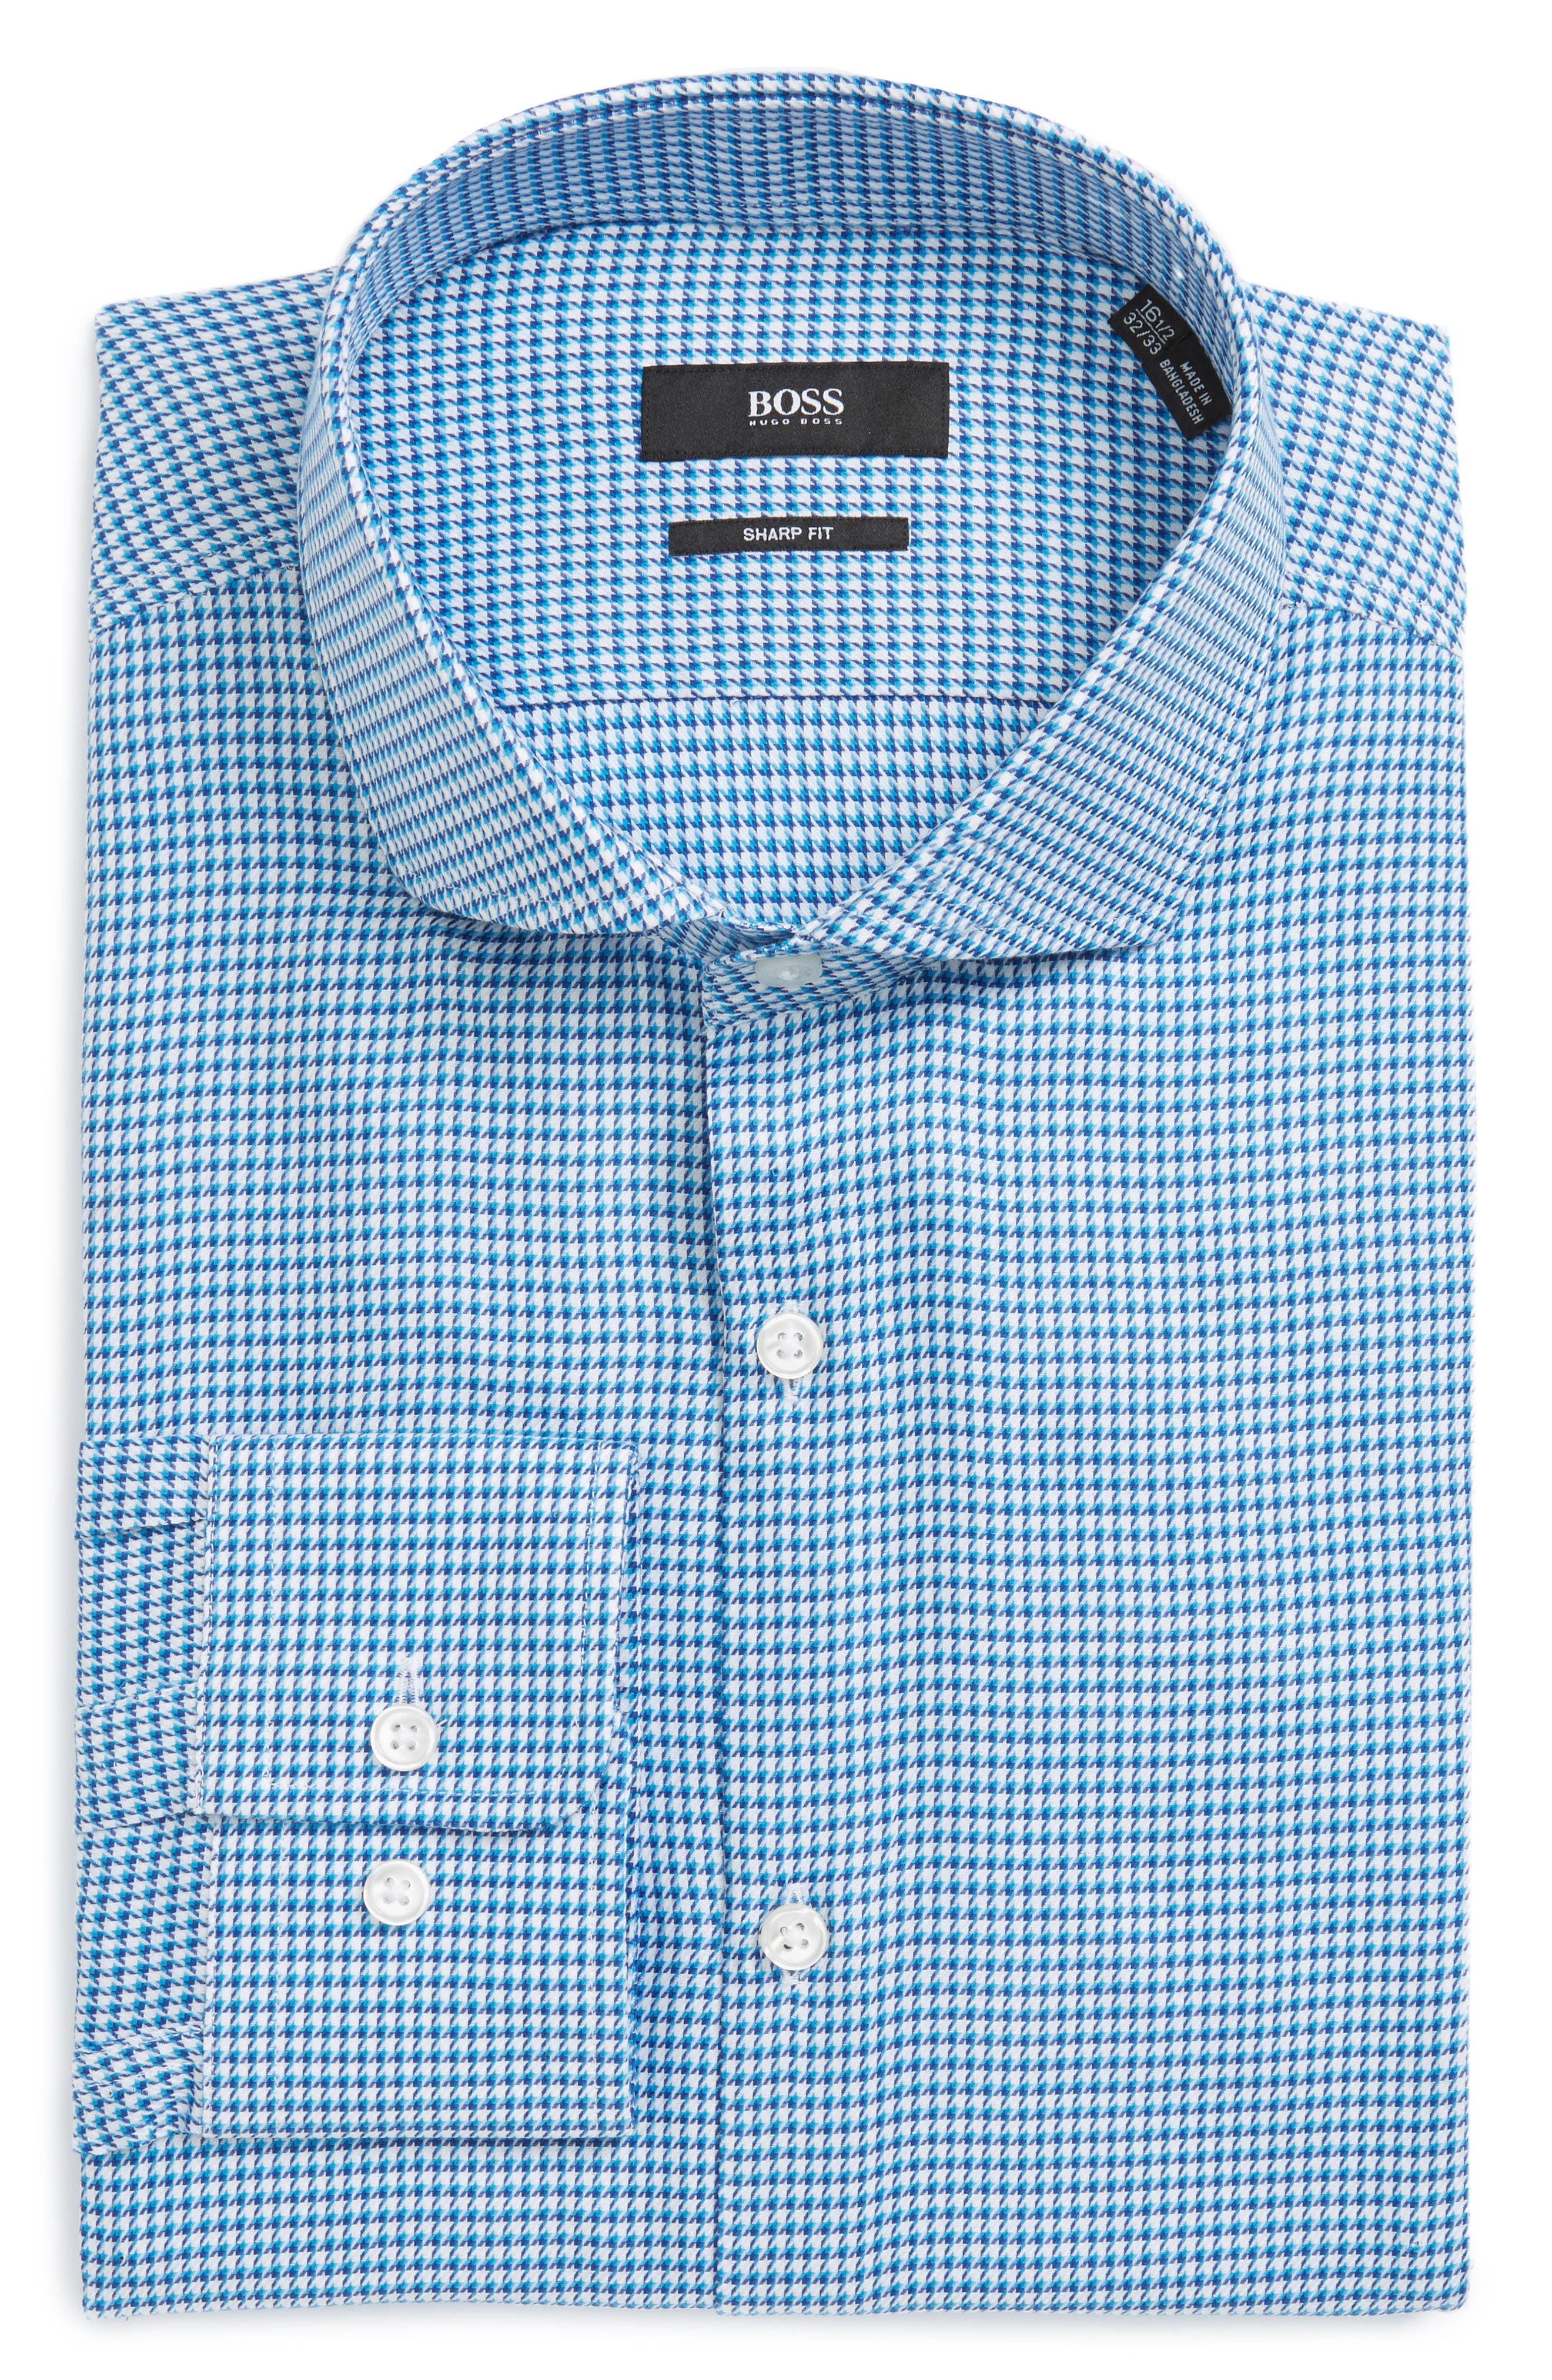 Mark Sharp Fit Houndstooth Dress Shirt,                         Main,                         color, Turquoise/ Aqua